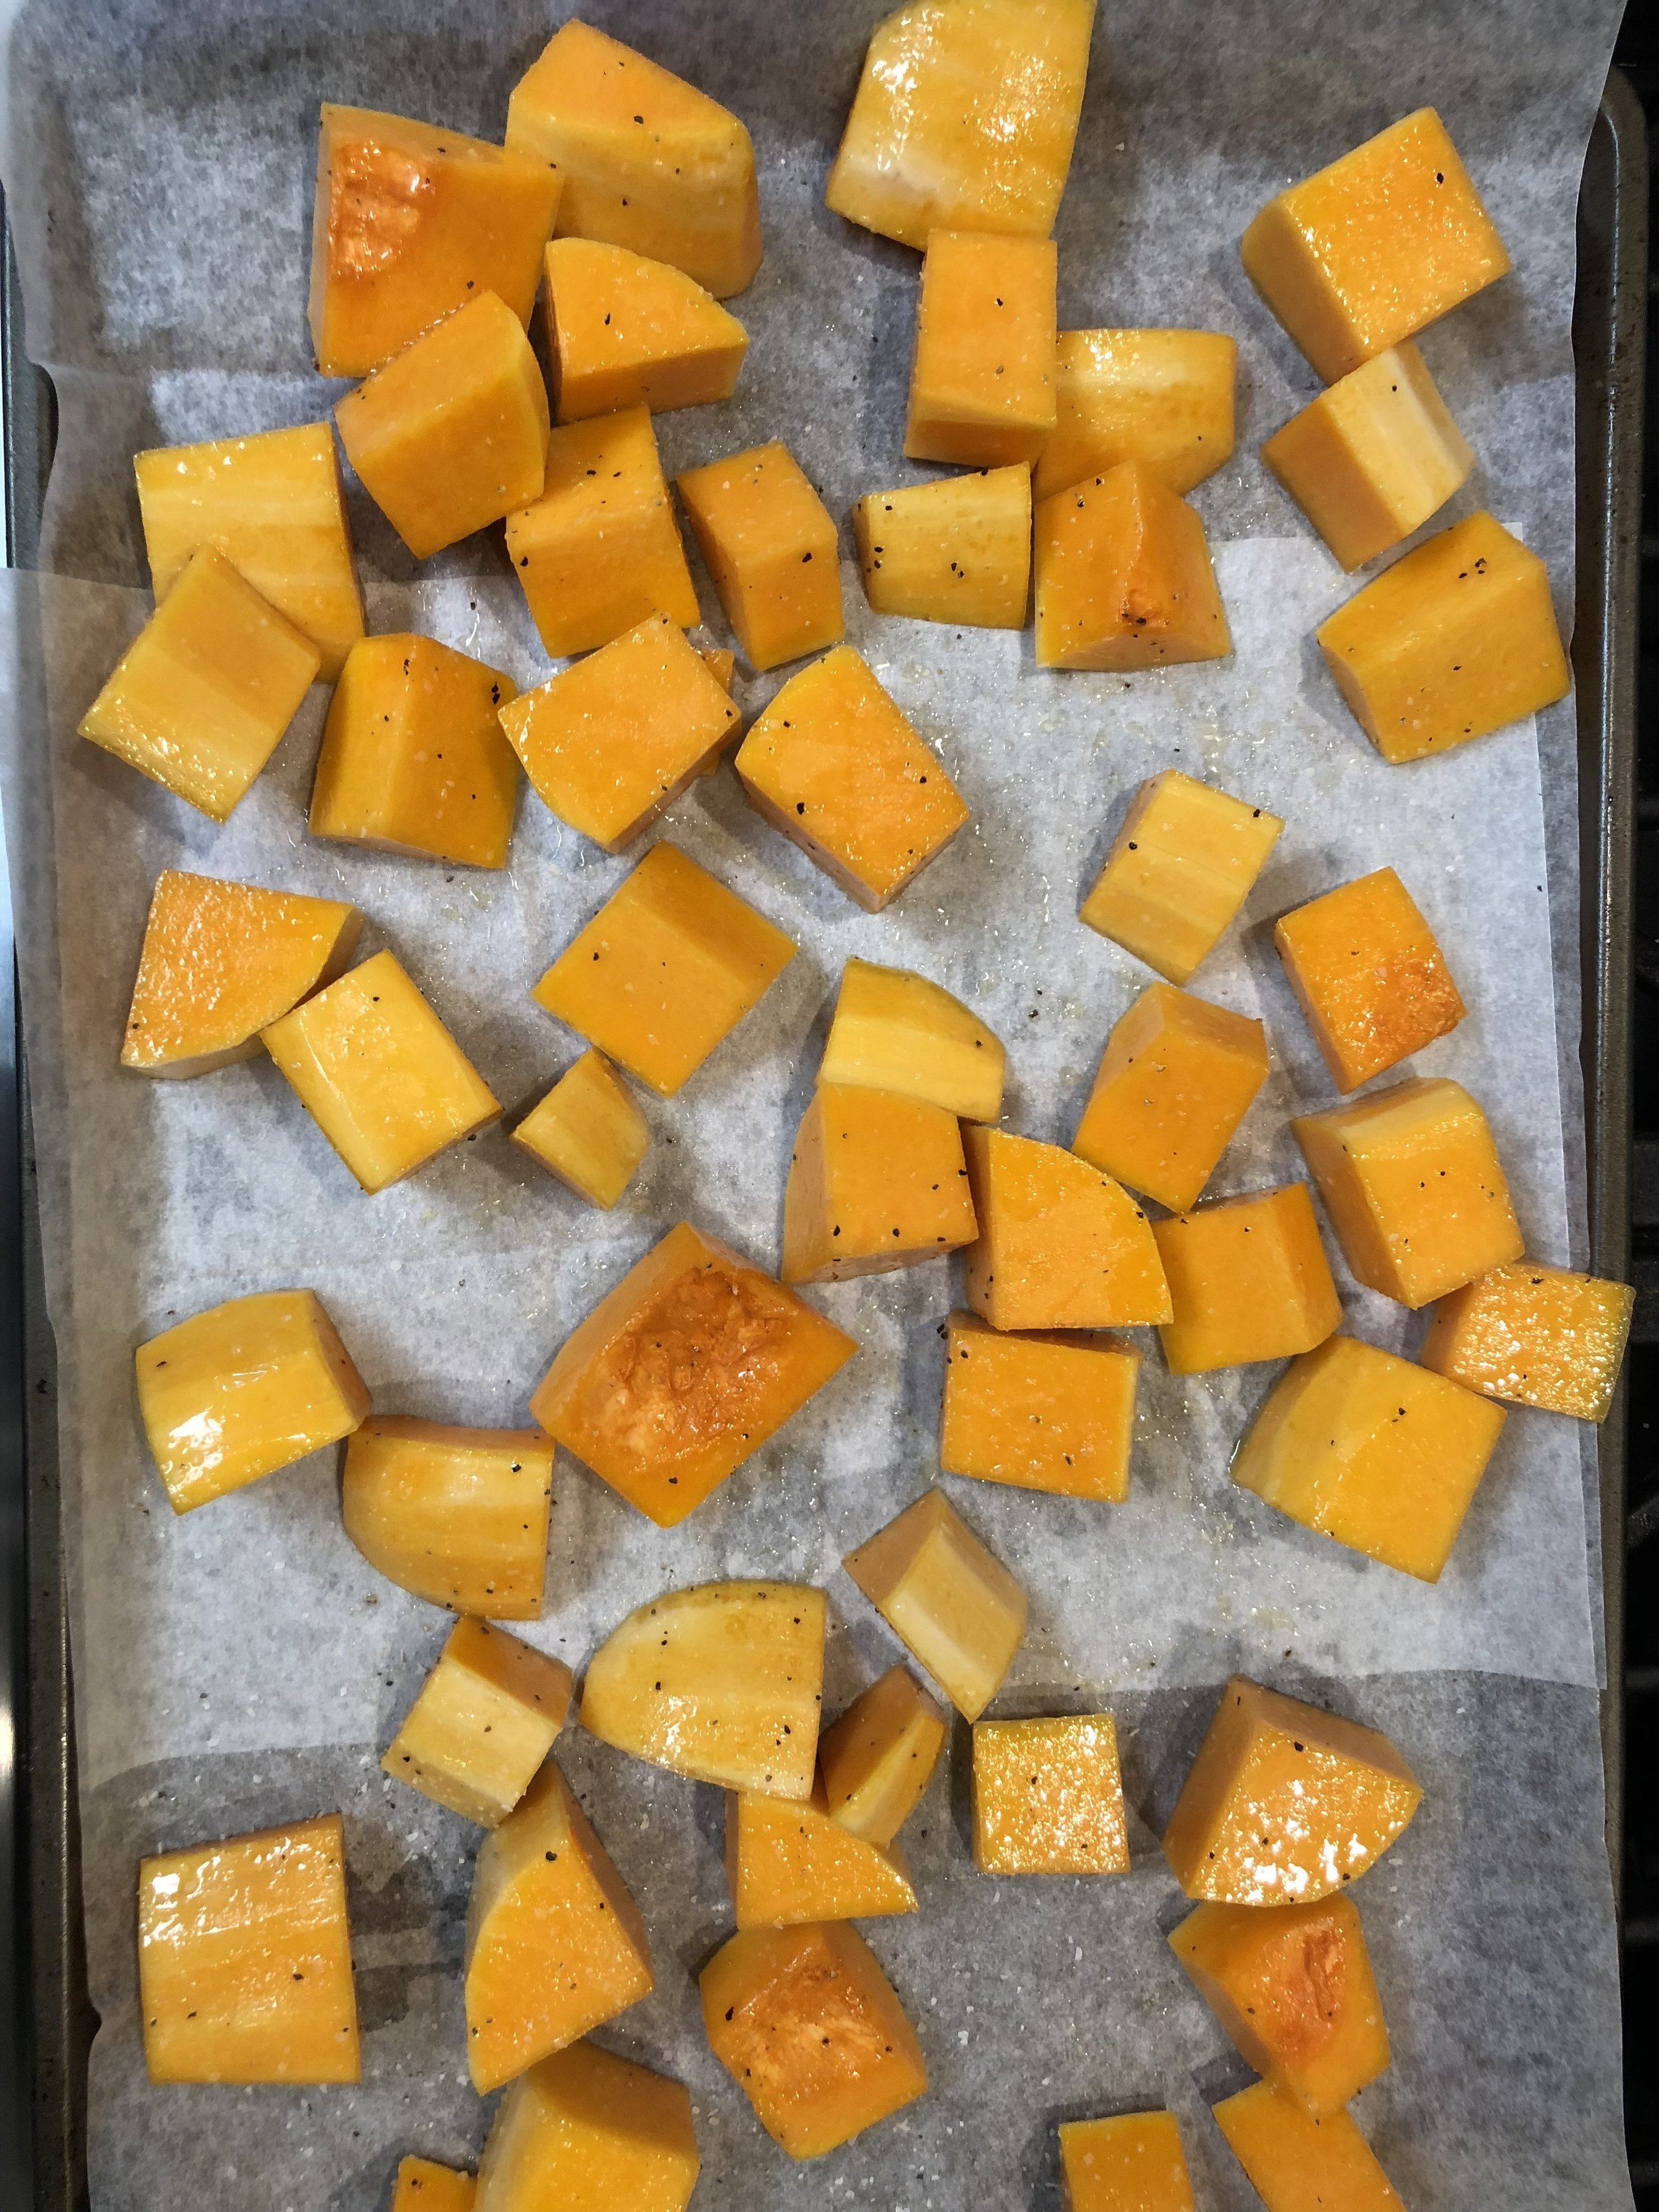 Butternut Squash ready for roasting!